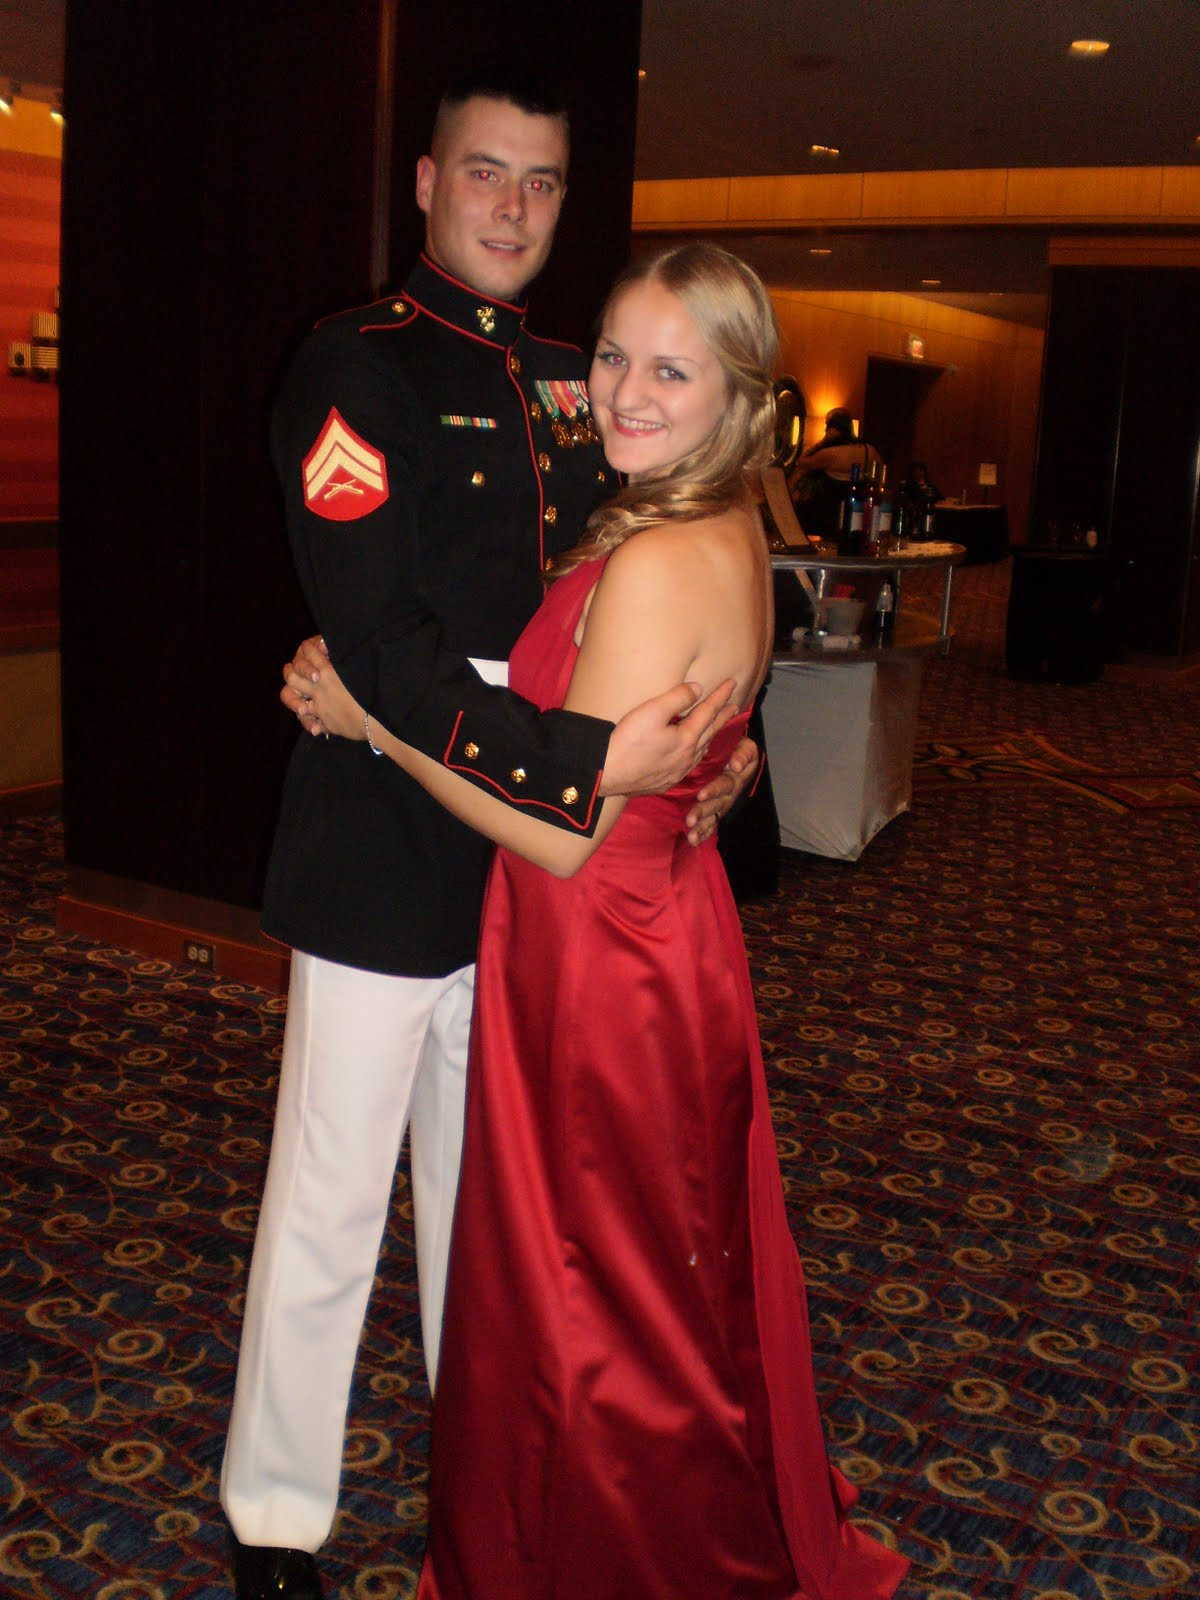 Looks - Corps marine ball what not to wear video